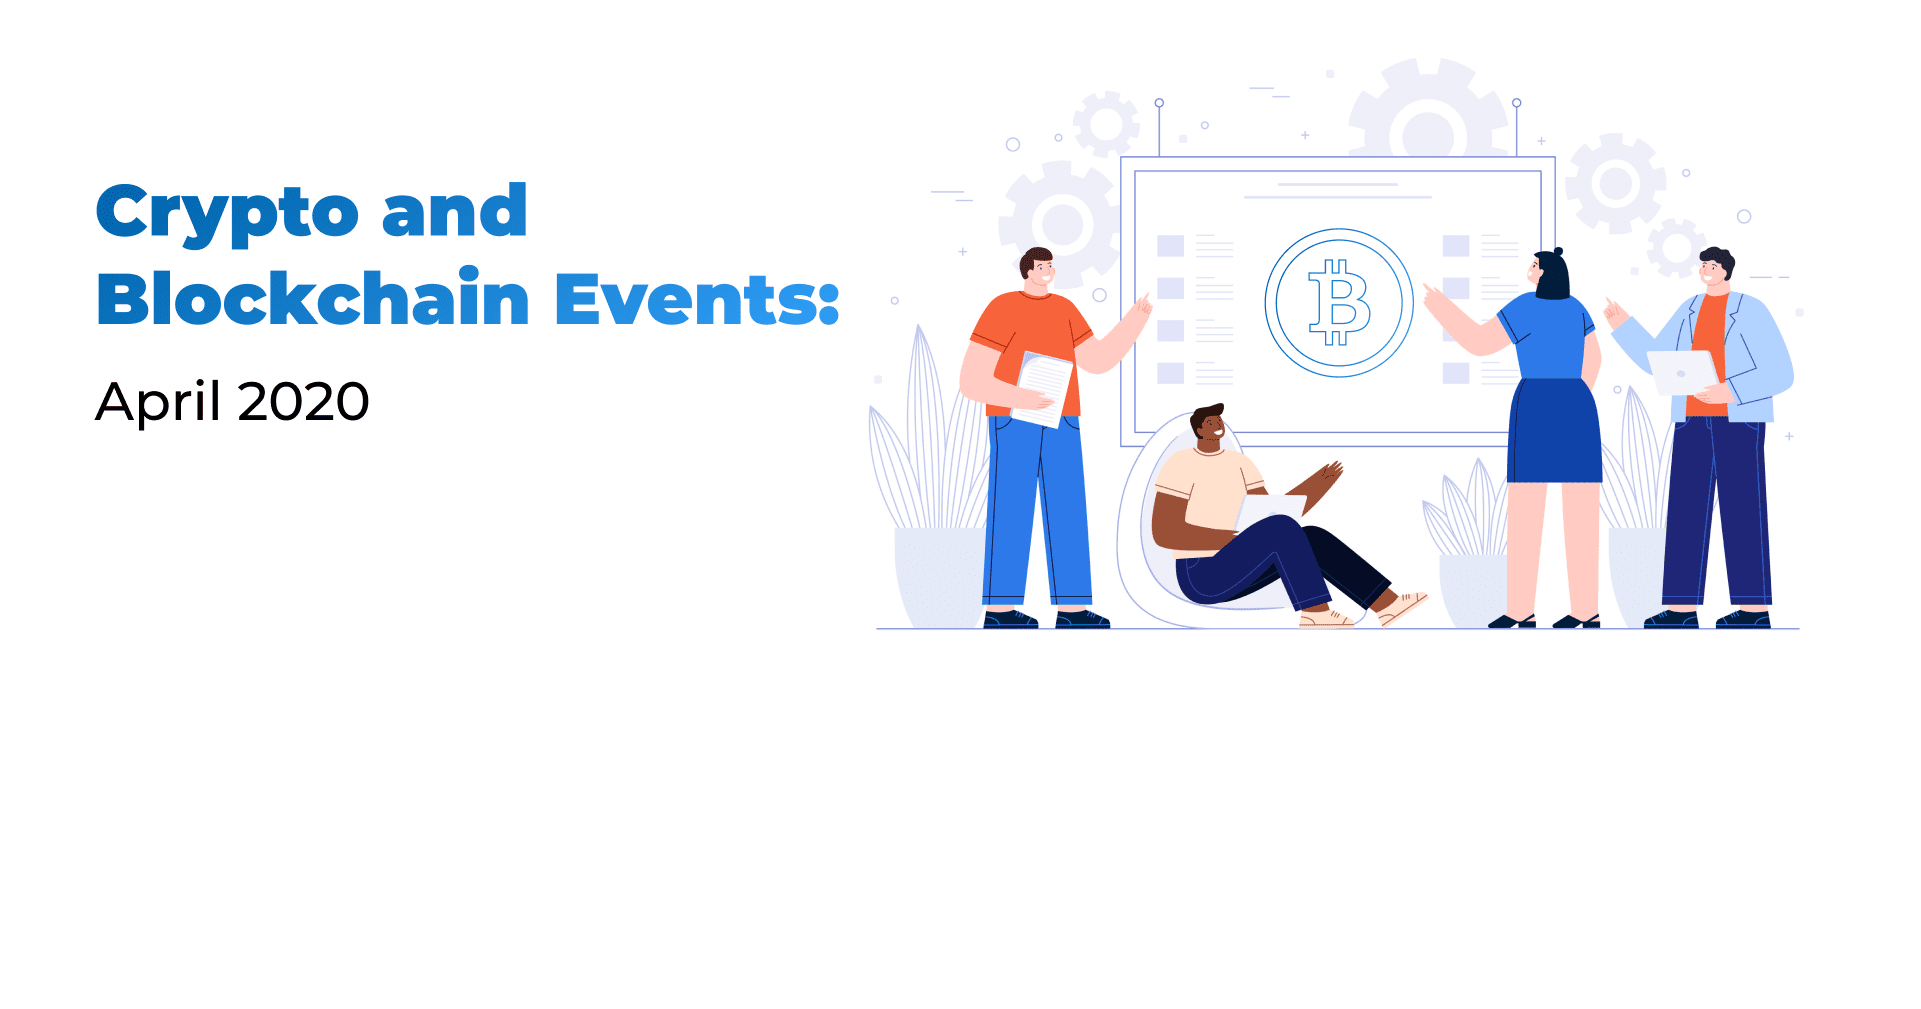 crypto_events_April_2020